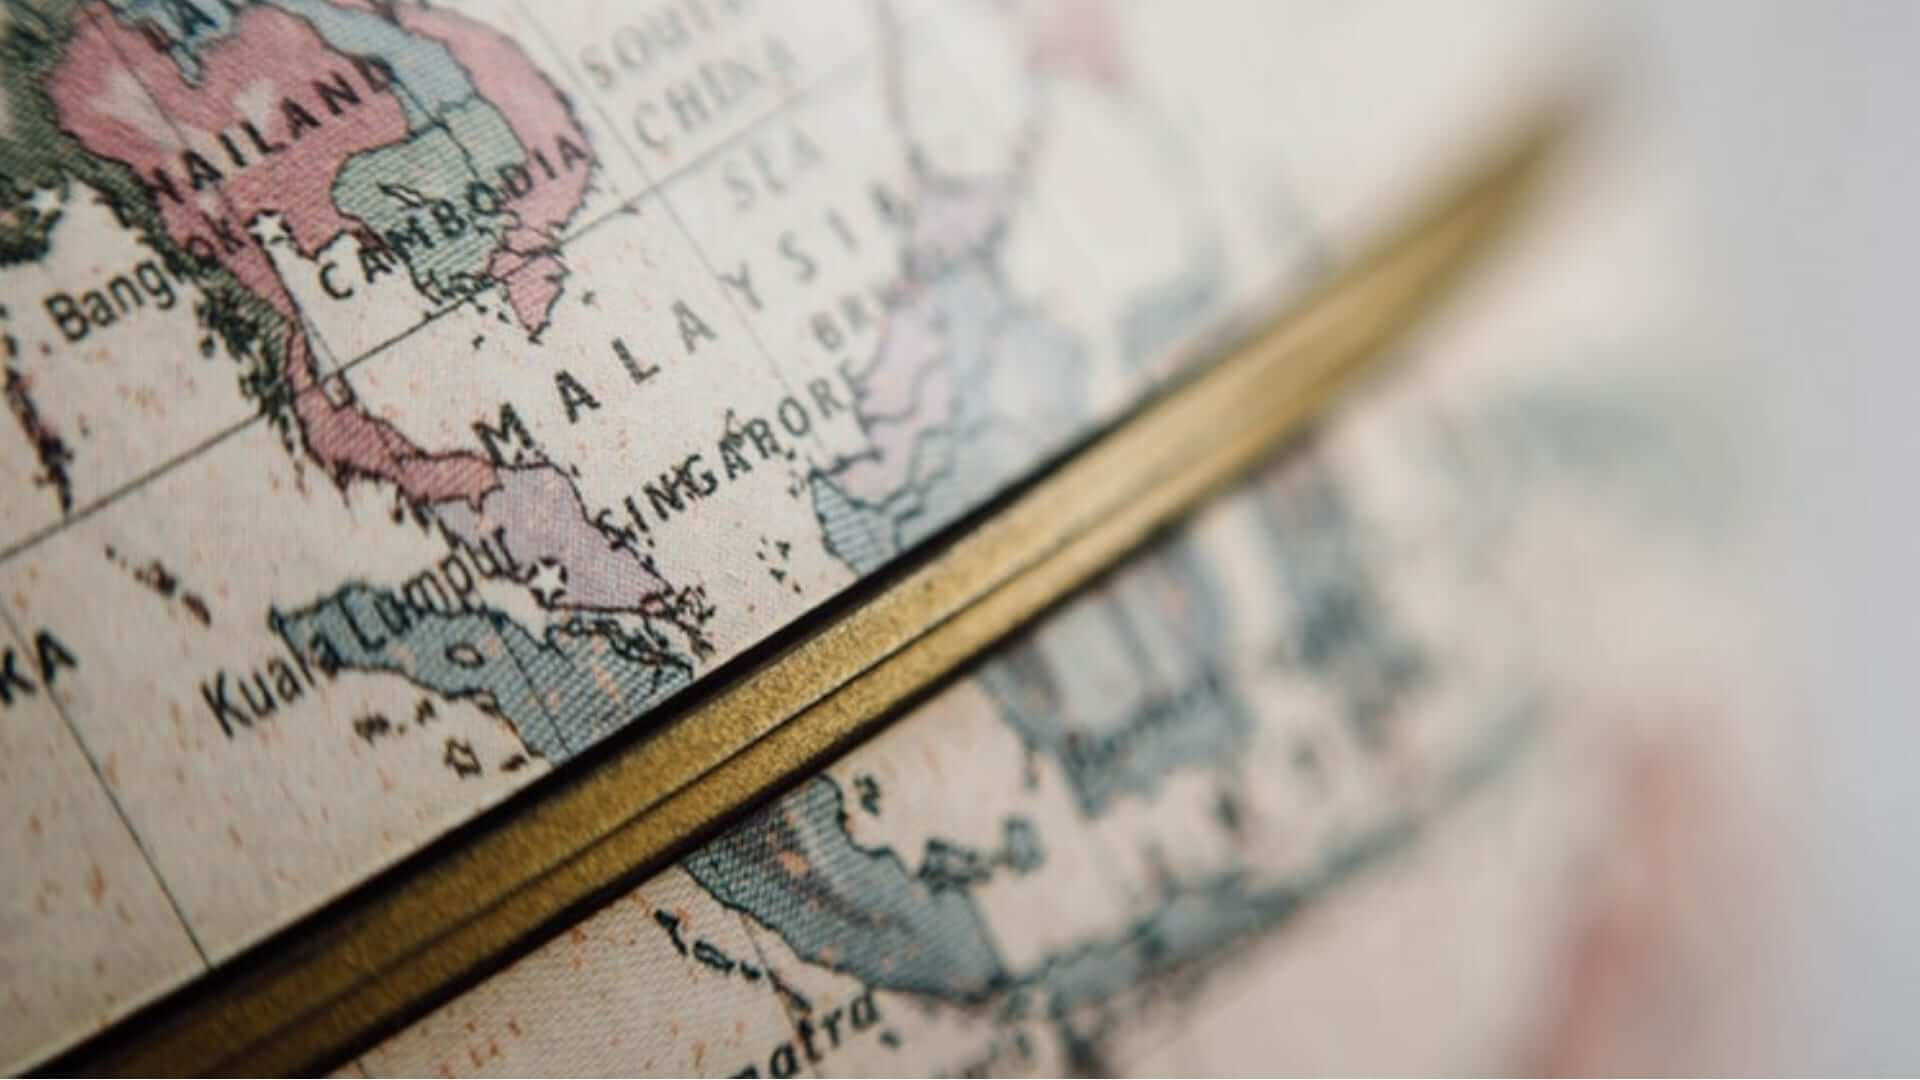 A piece of a globe with Malaysia, Singapore, Thailand and Kuala Lumpur on it.